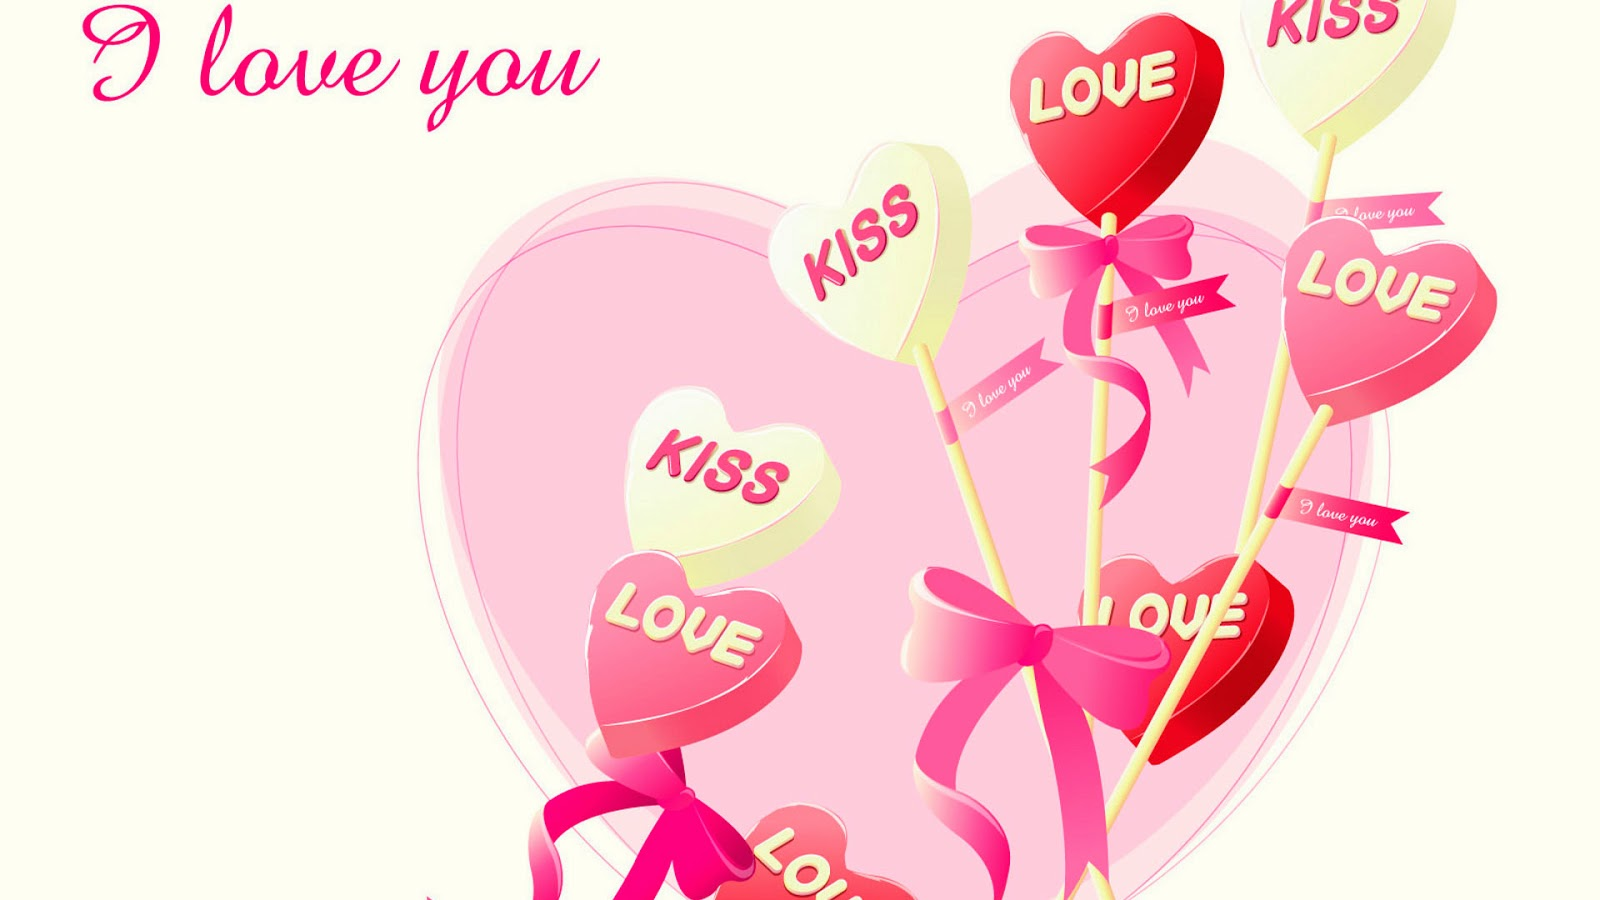 I Love You Picture Quotes Free Download